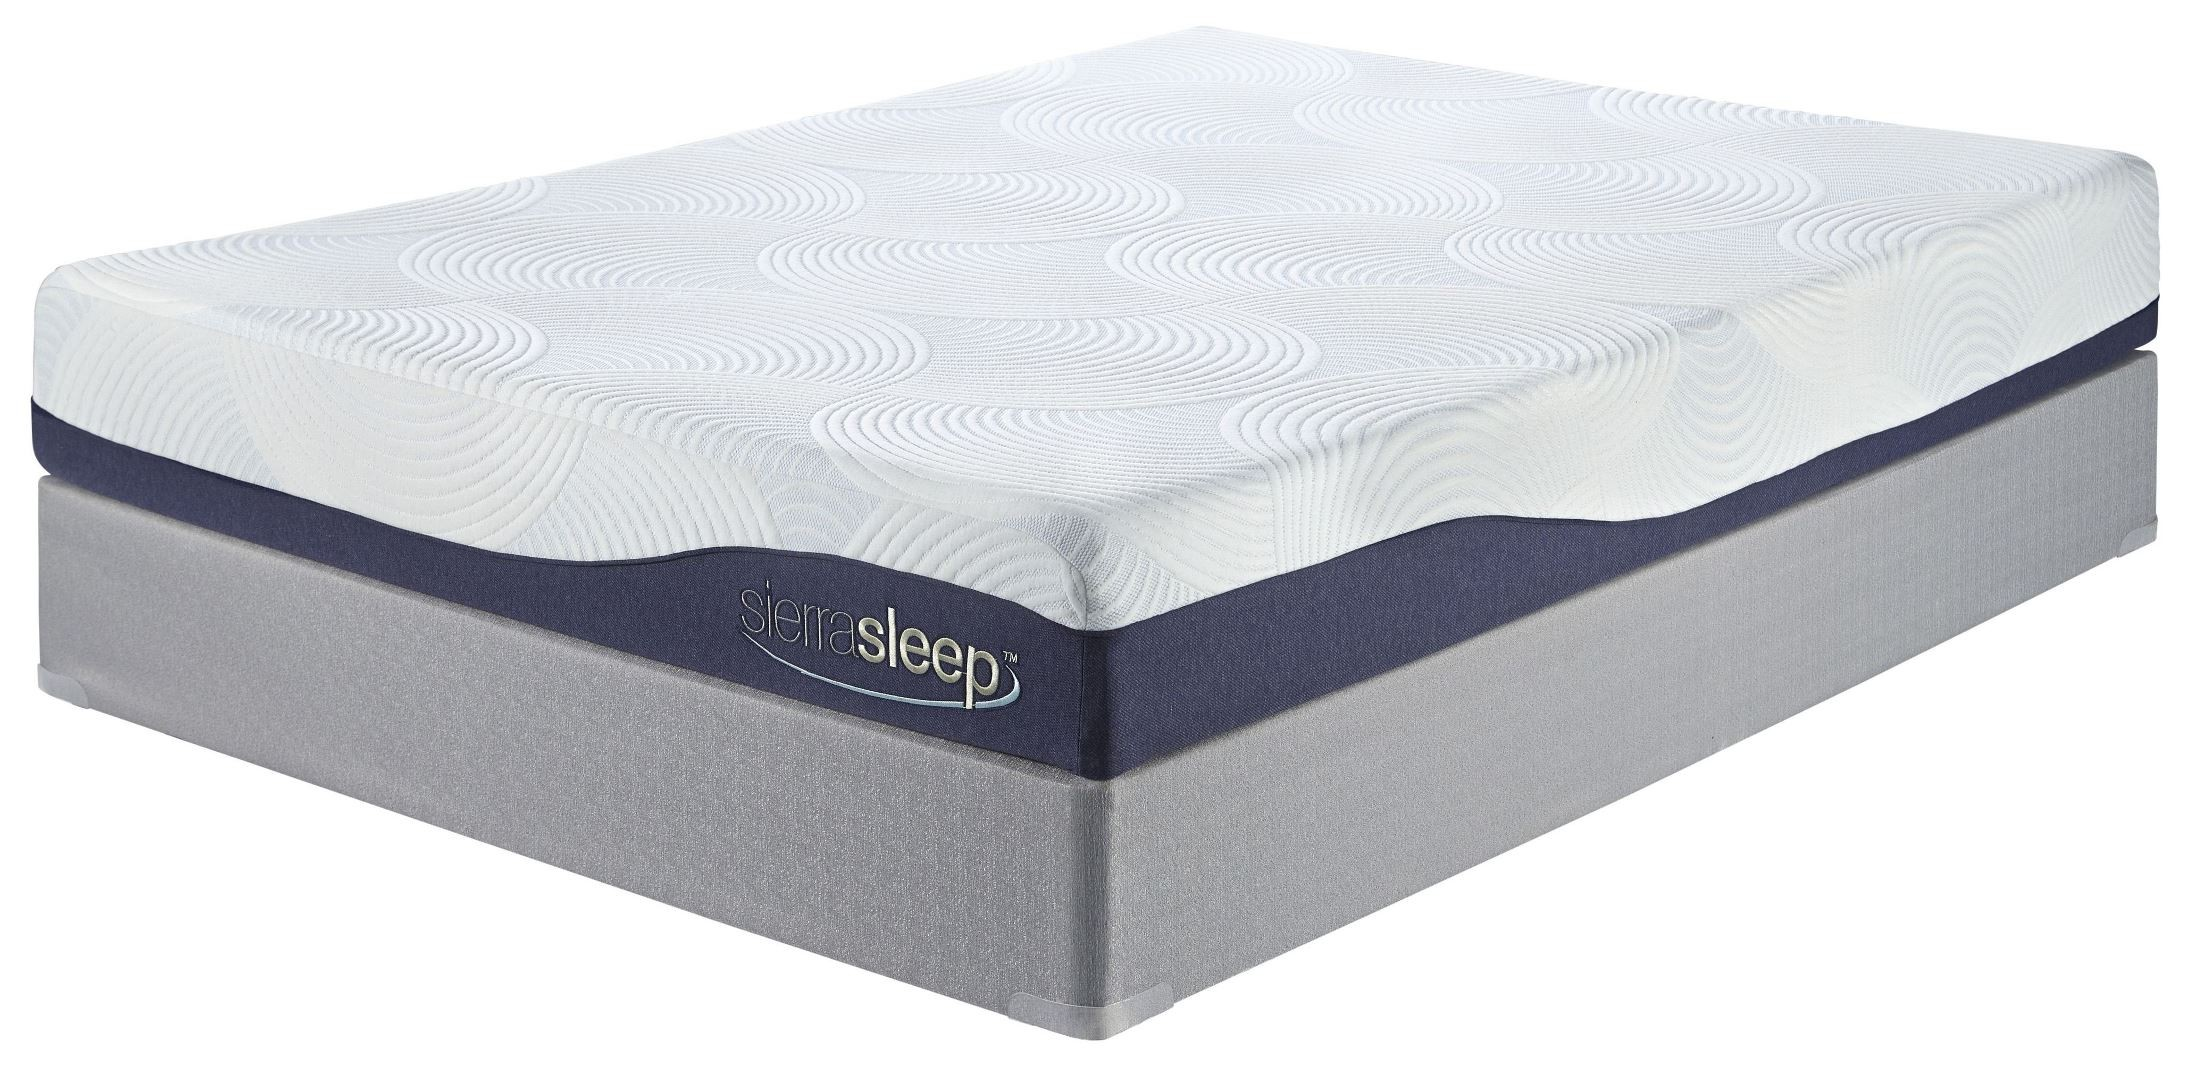 9 Inch Gel Memory Foam White Queen Mattress M97231 Ashley